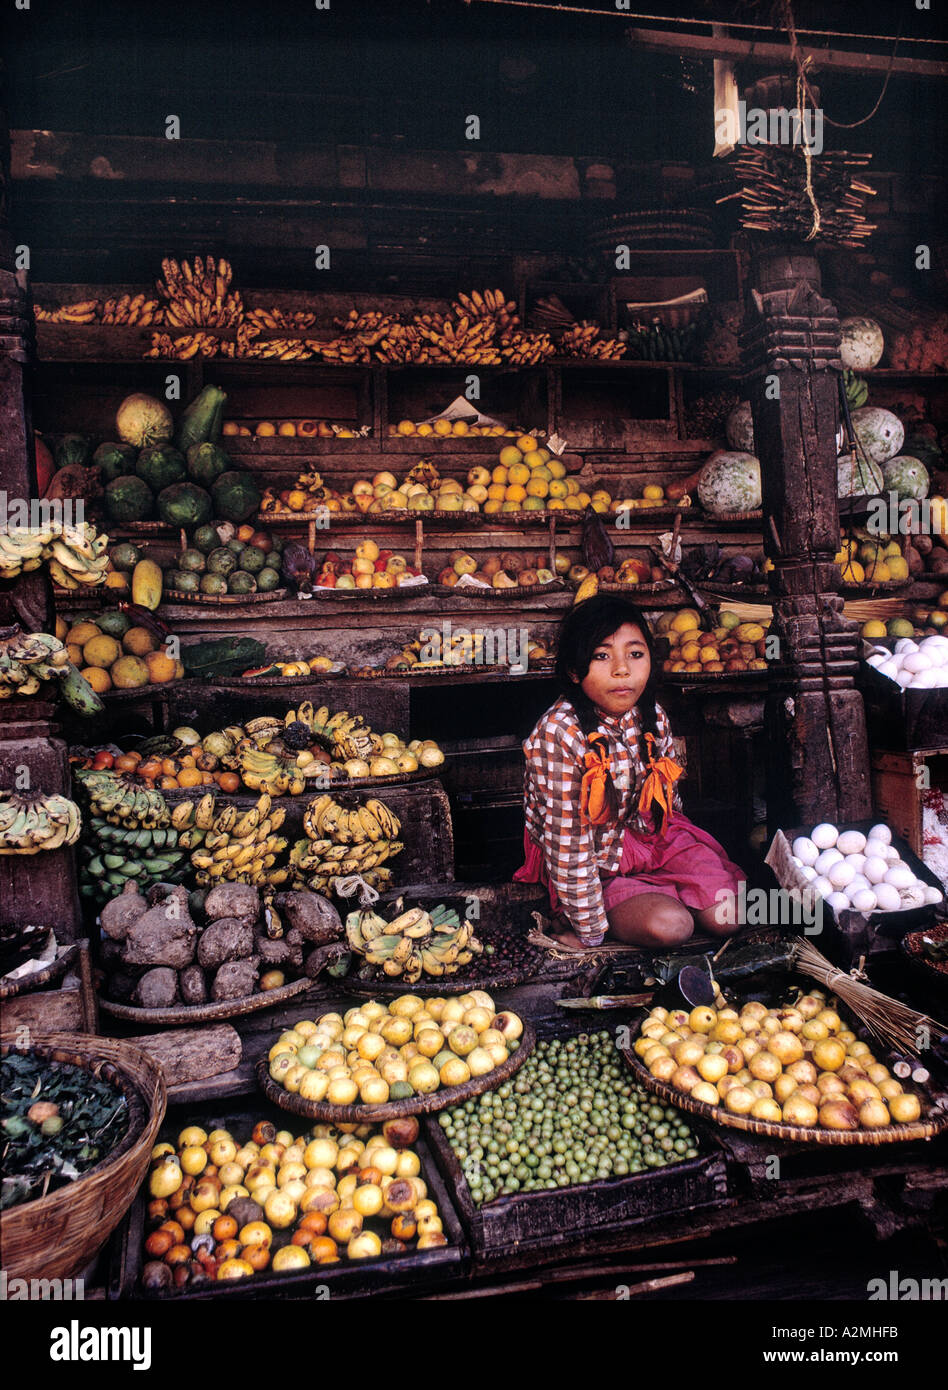 VEGETABLE SHOP IN KATHMANDHU NEPAL PHOTO BY TERRY FINCHER - Stock Image